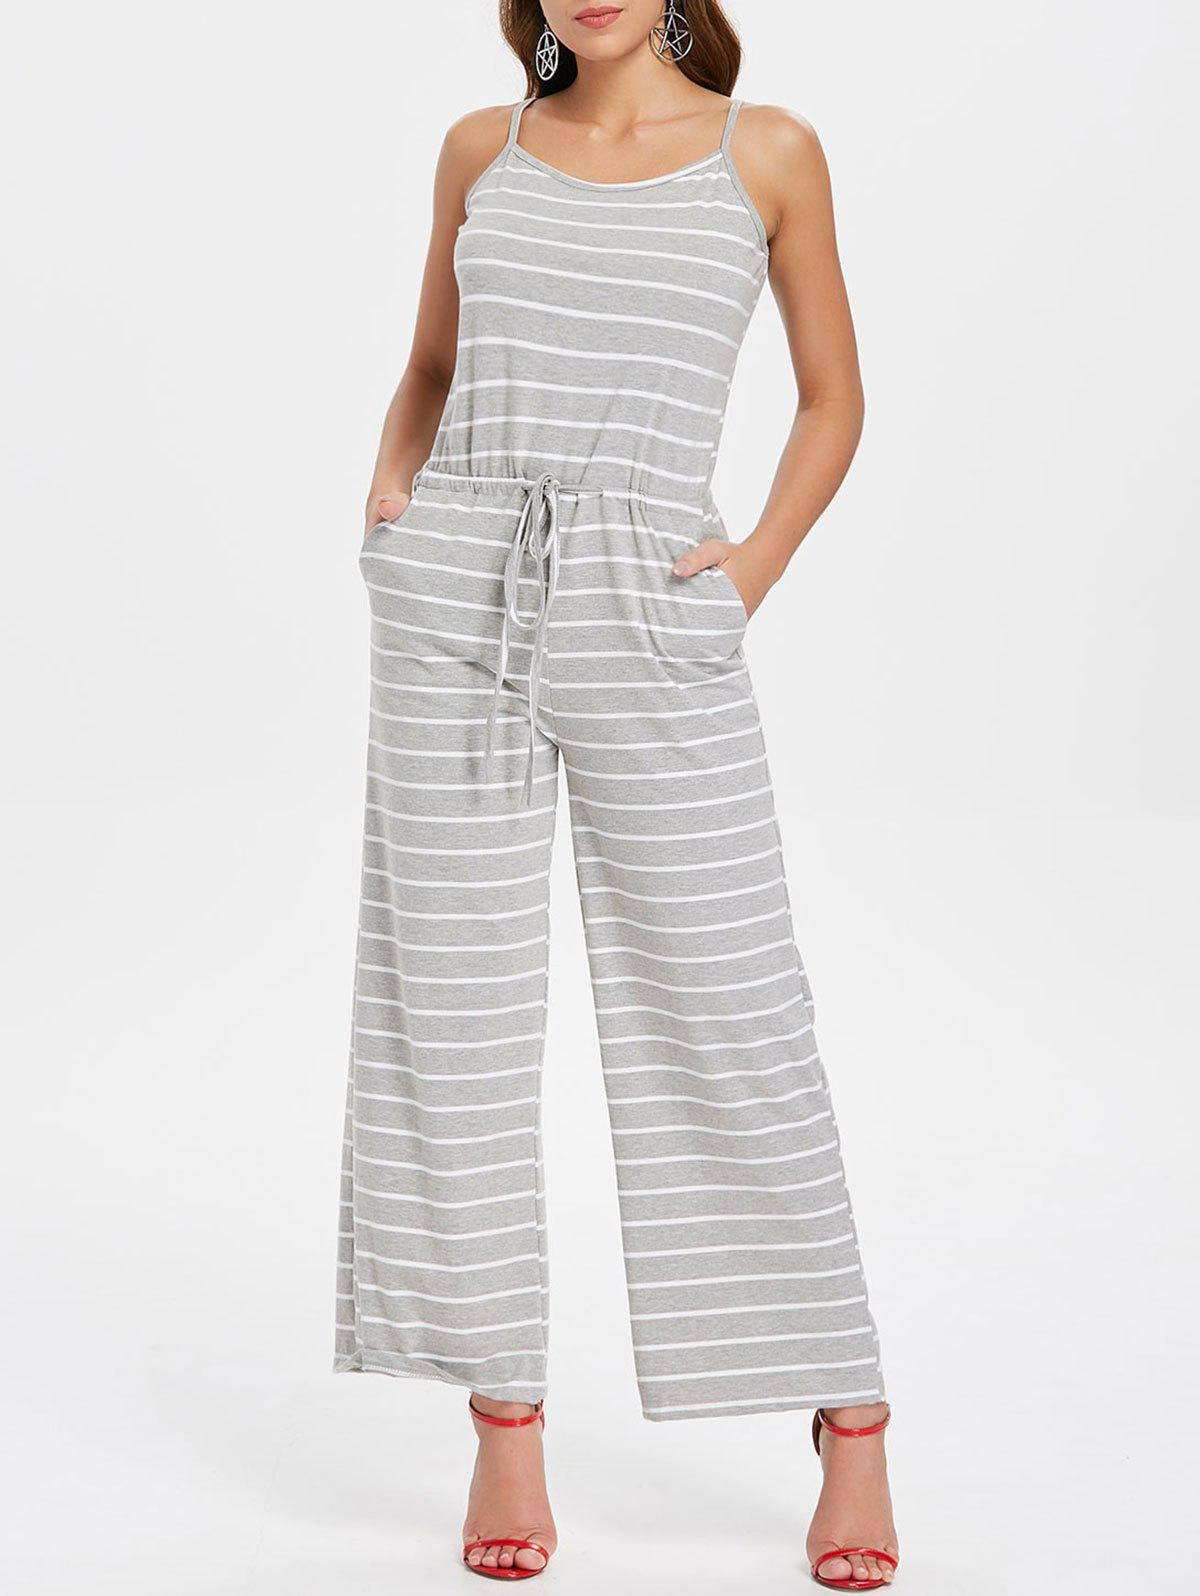 Shops Drawstring Waist Striped Jumpsuit